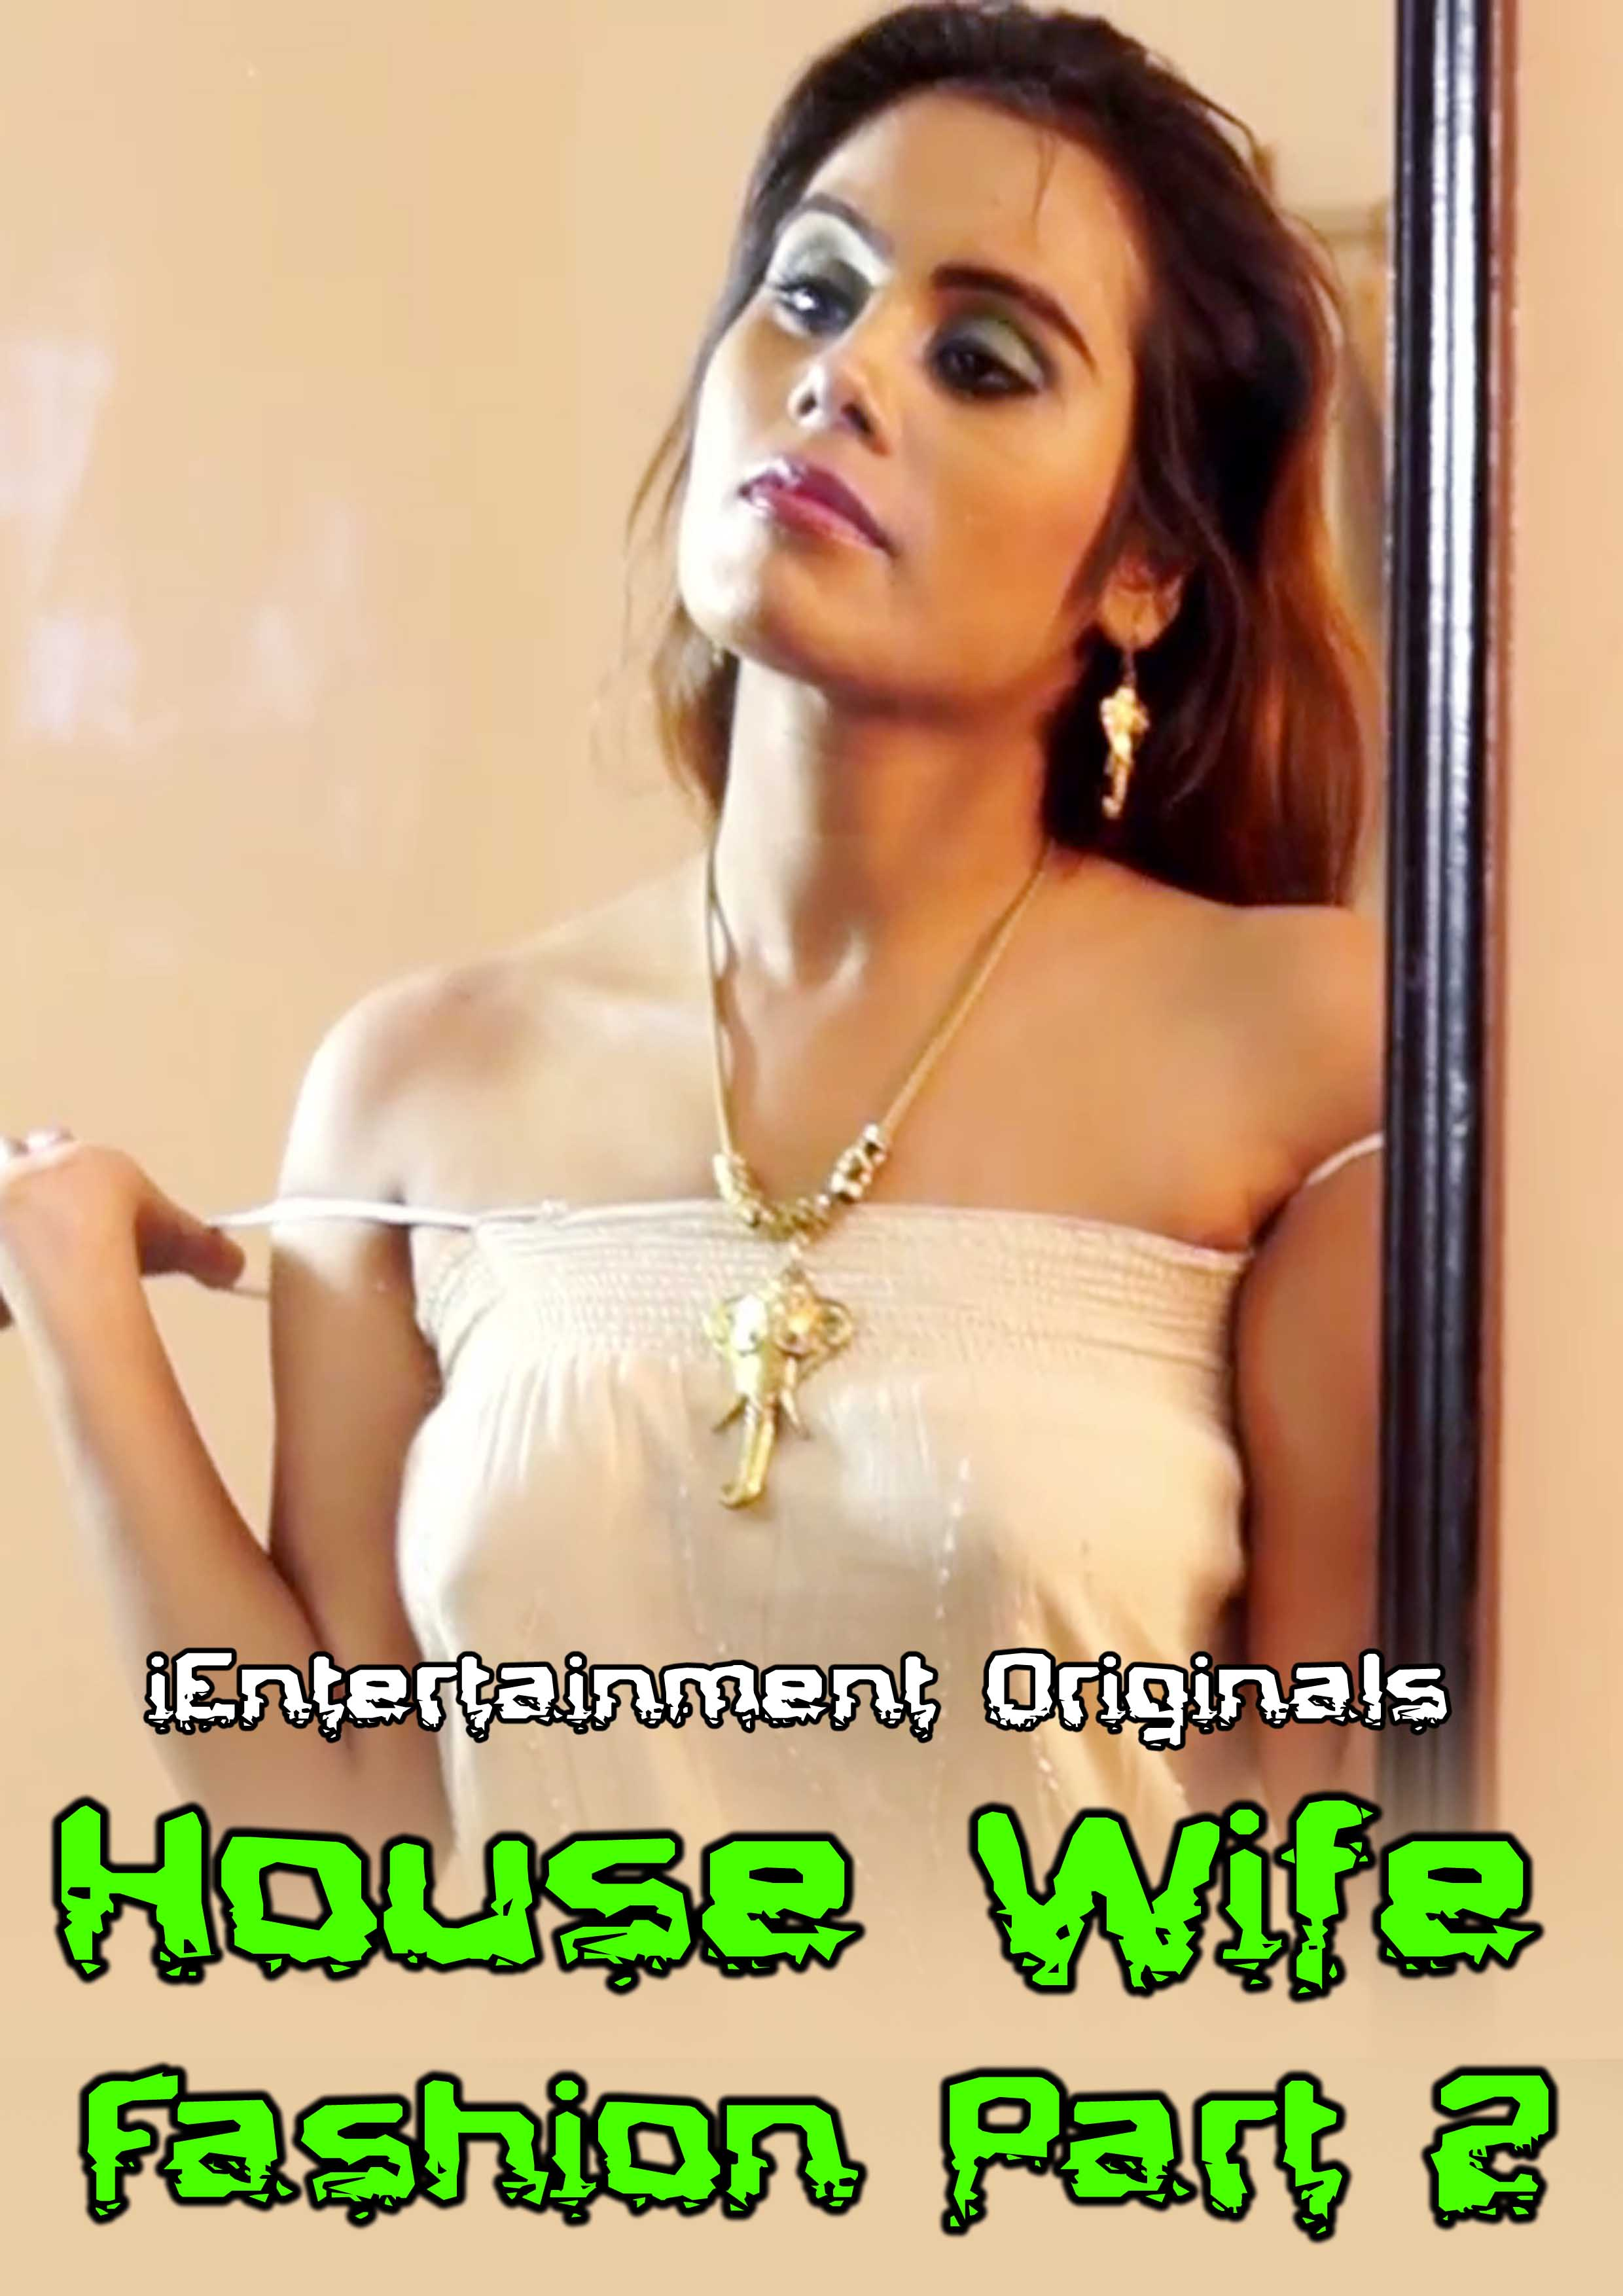 18+ House Wife Fashion Part 2 (2020) Hindi iEntertainment Originals Video 720p HDRip 150MB MKV